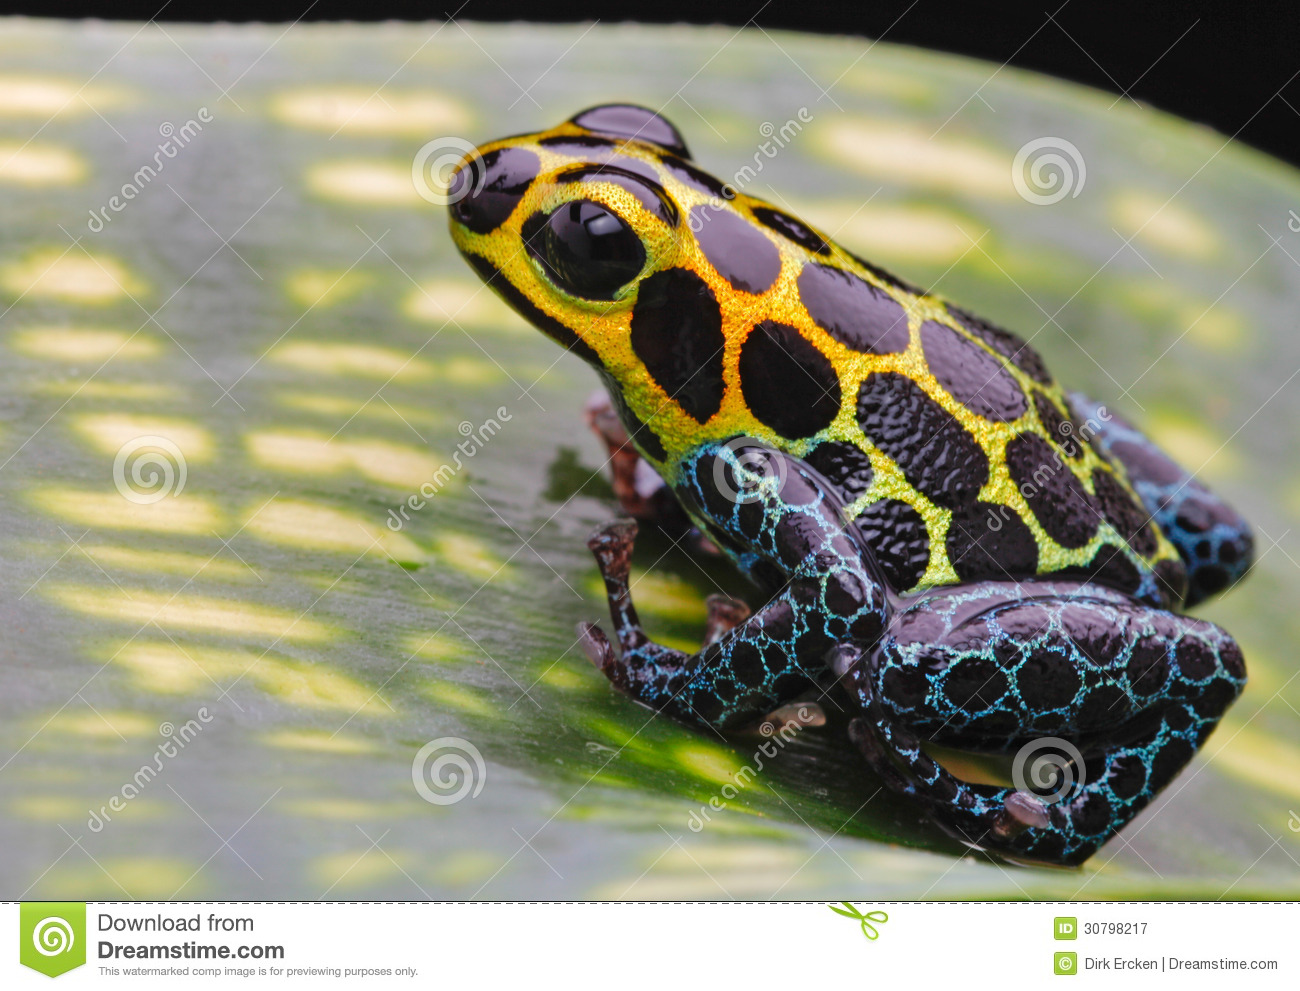 Tropical pet animal, a poison arrow frog from the Amazon rain forest ...